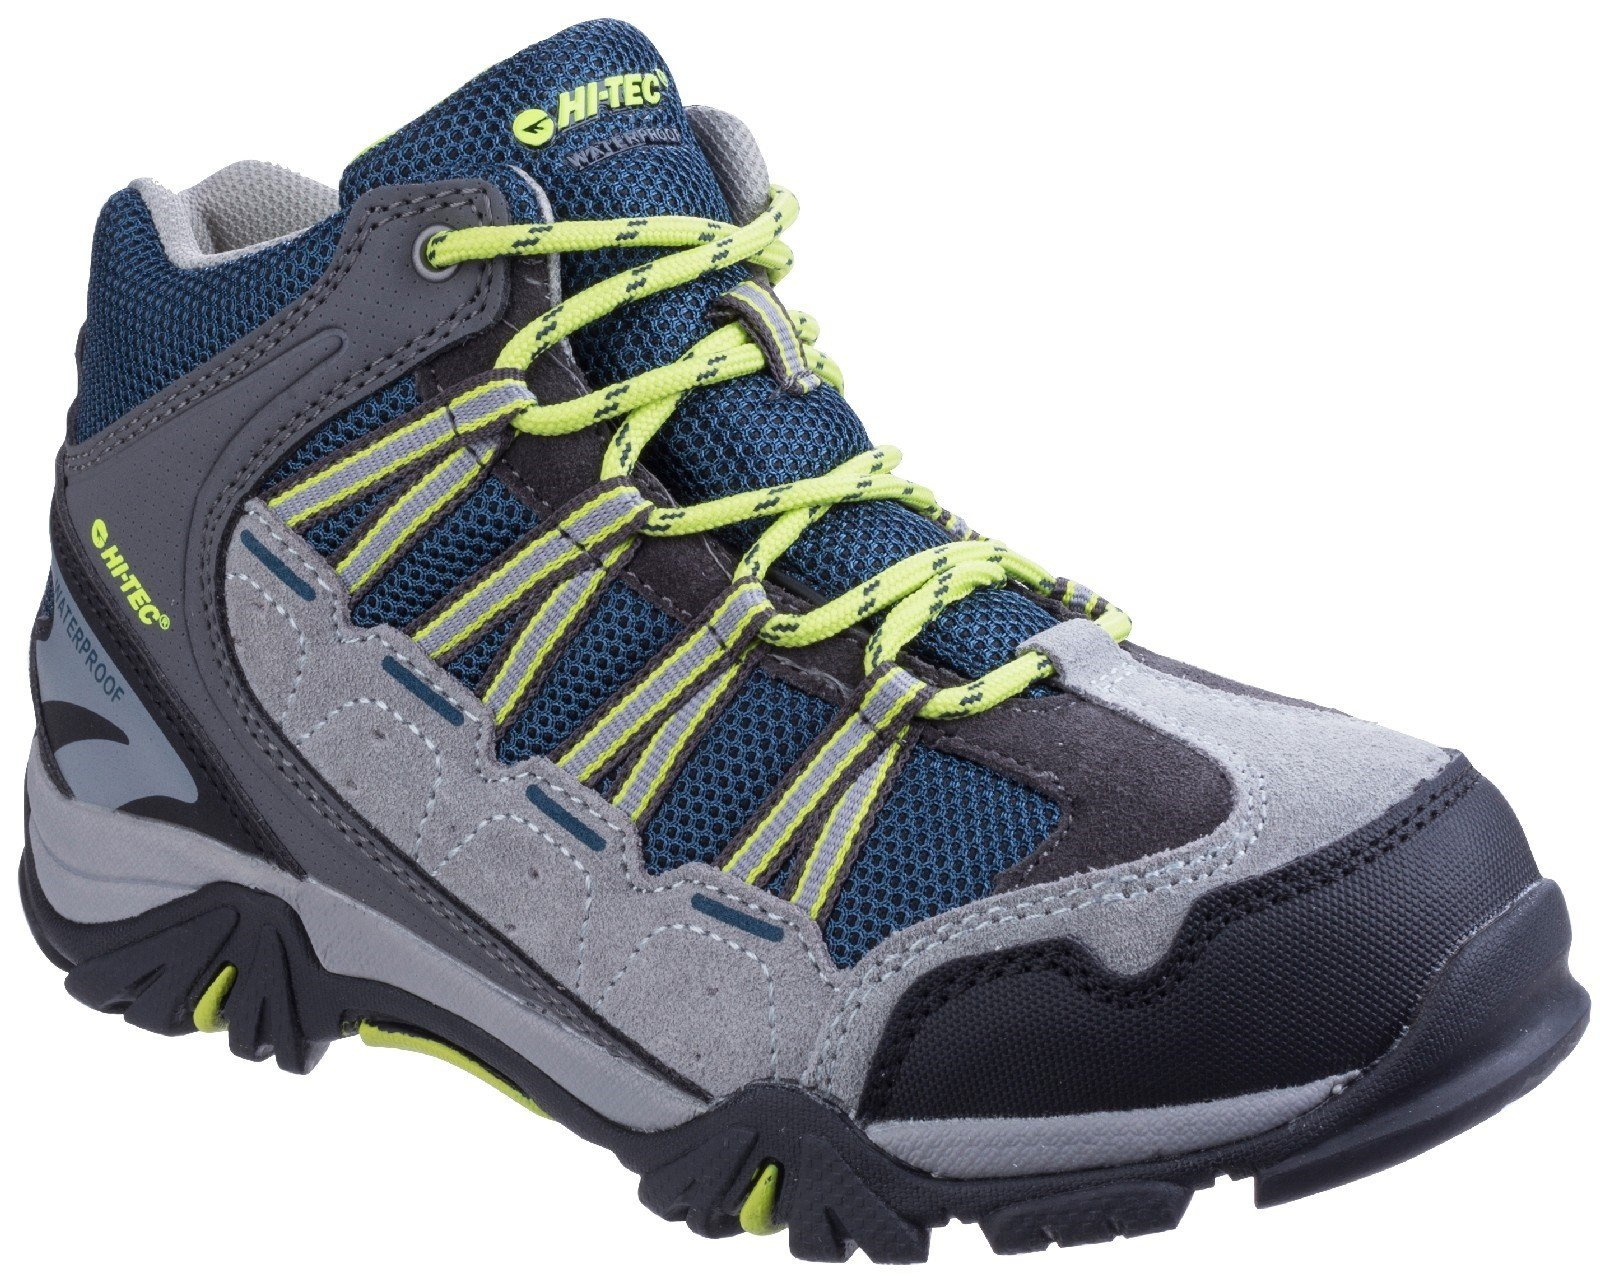 Hi-Tec Unisex Forza Mid Waterproof Hiking Boot Various Colours 25488 - Cool Grey/Majolica/Limoncello 10